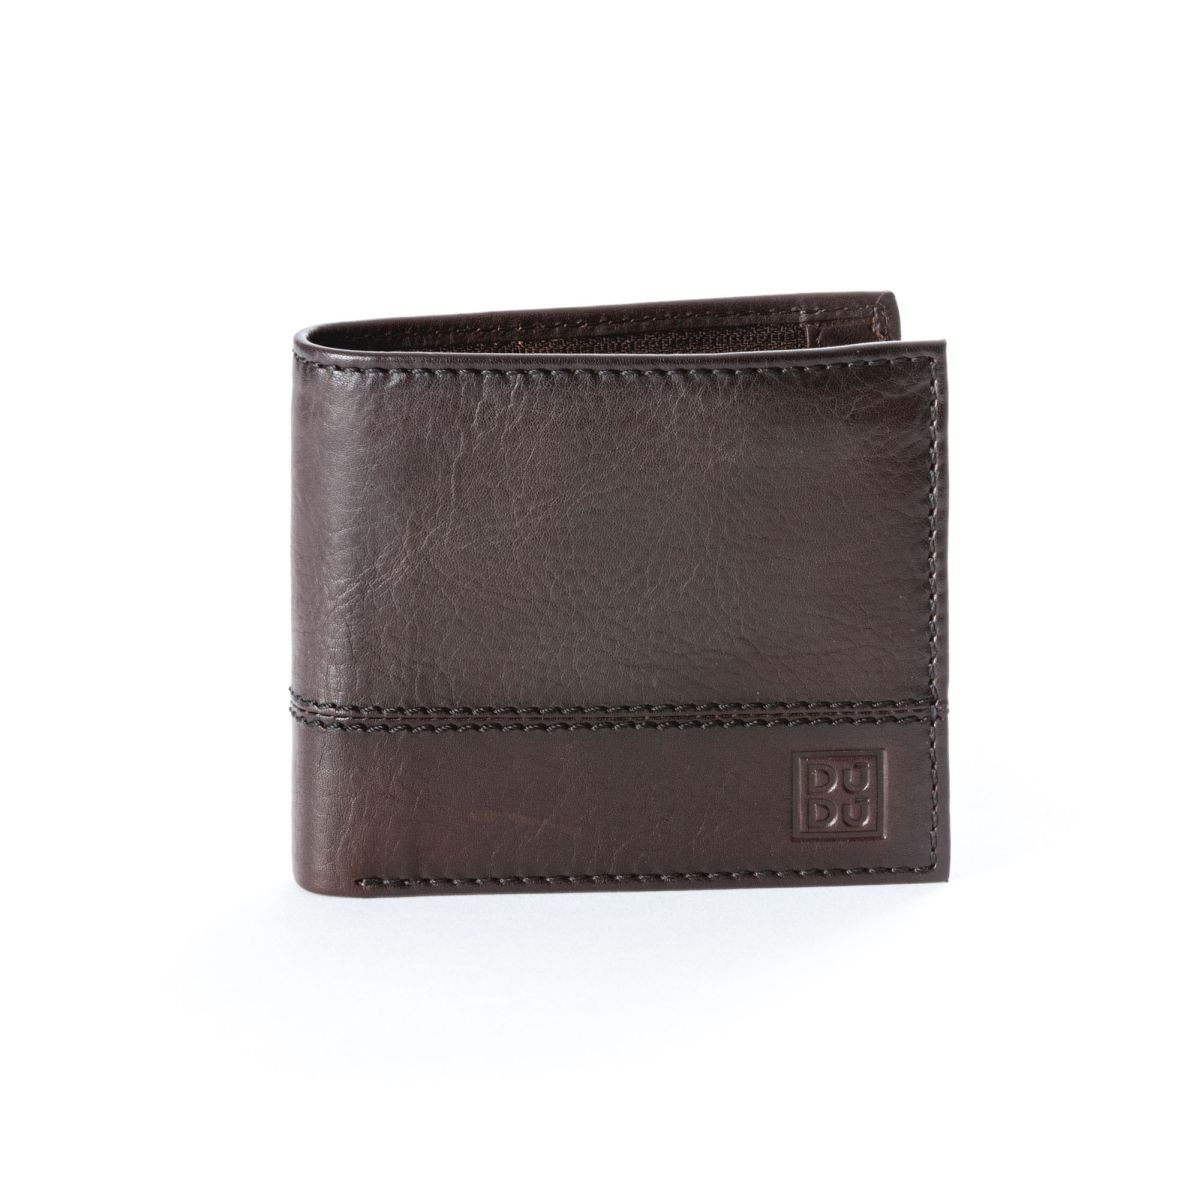 DuDu Unique Leather Wallet With Coin Purse - Dark Brown